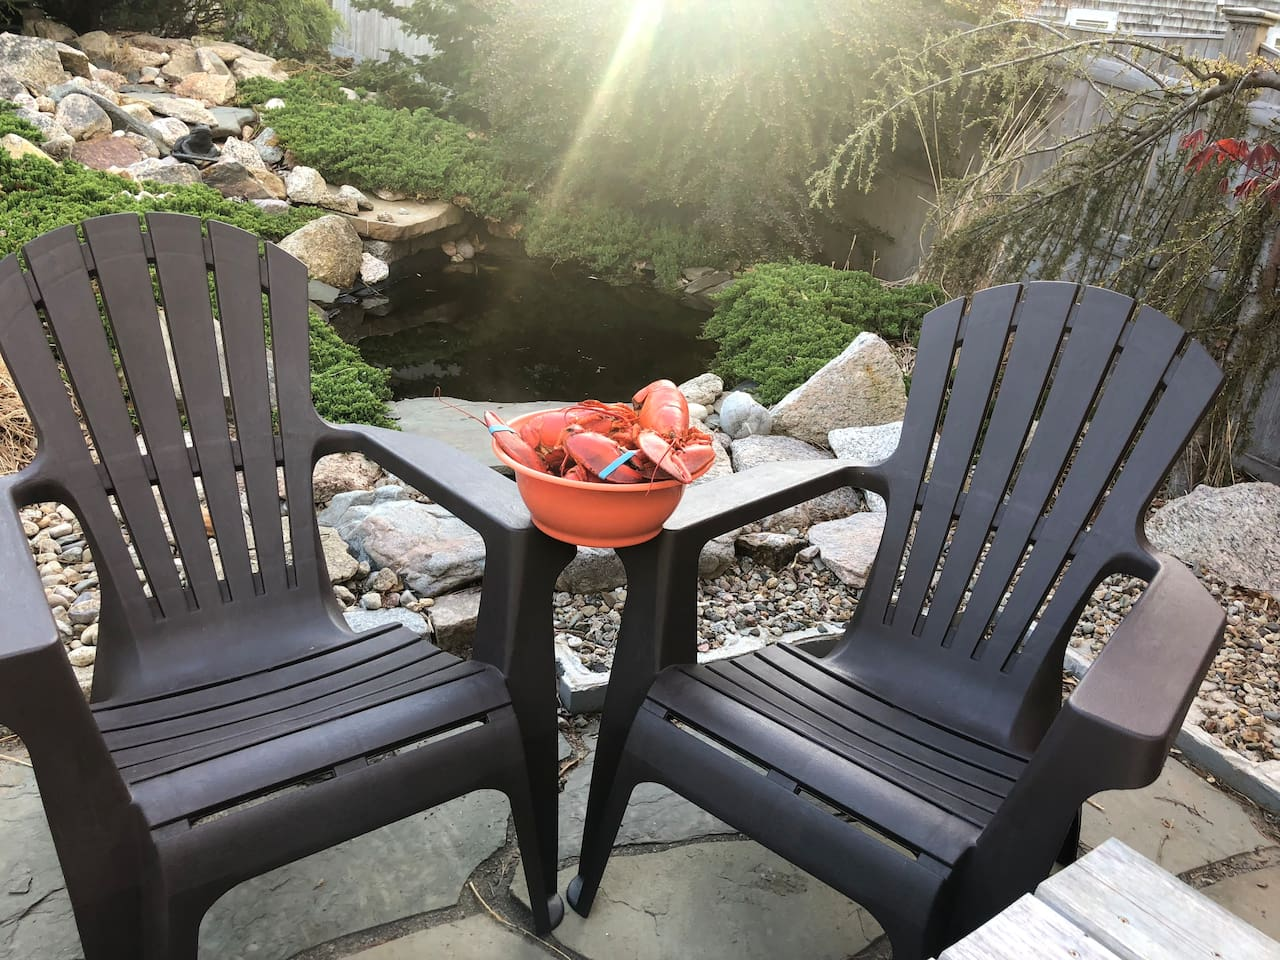 Lobstah anyone?!!  Enjoy dinner or your morning coffee sitting by the fish pond with the flowing waterfall.